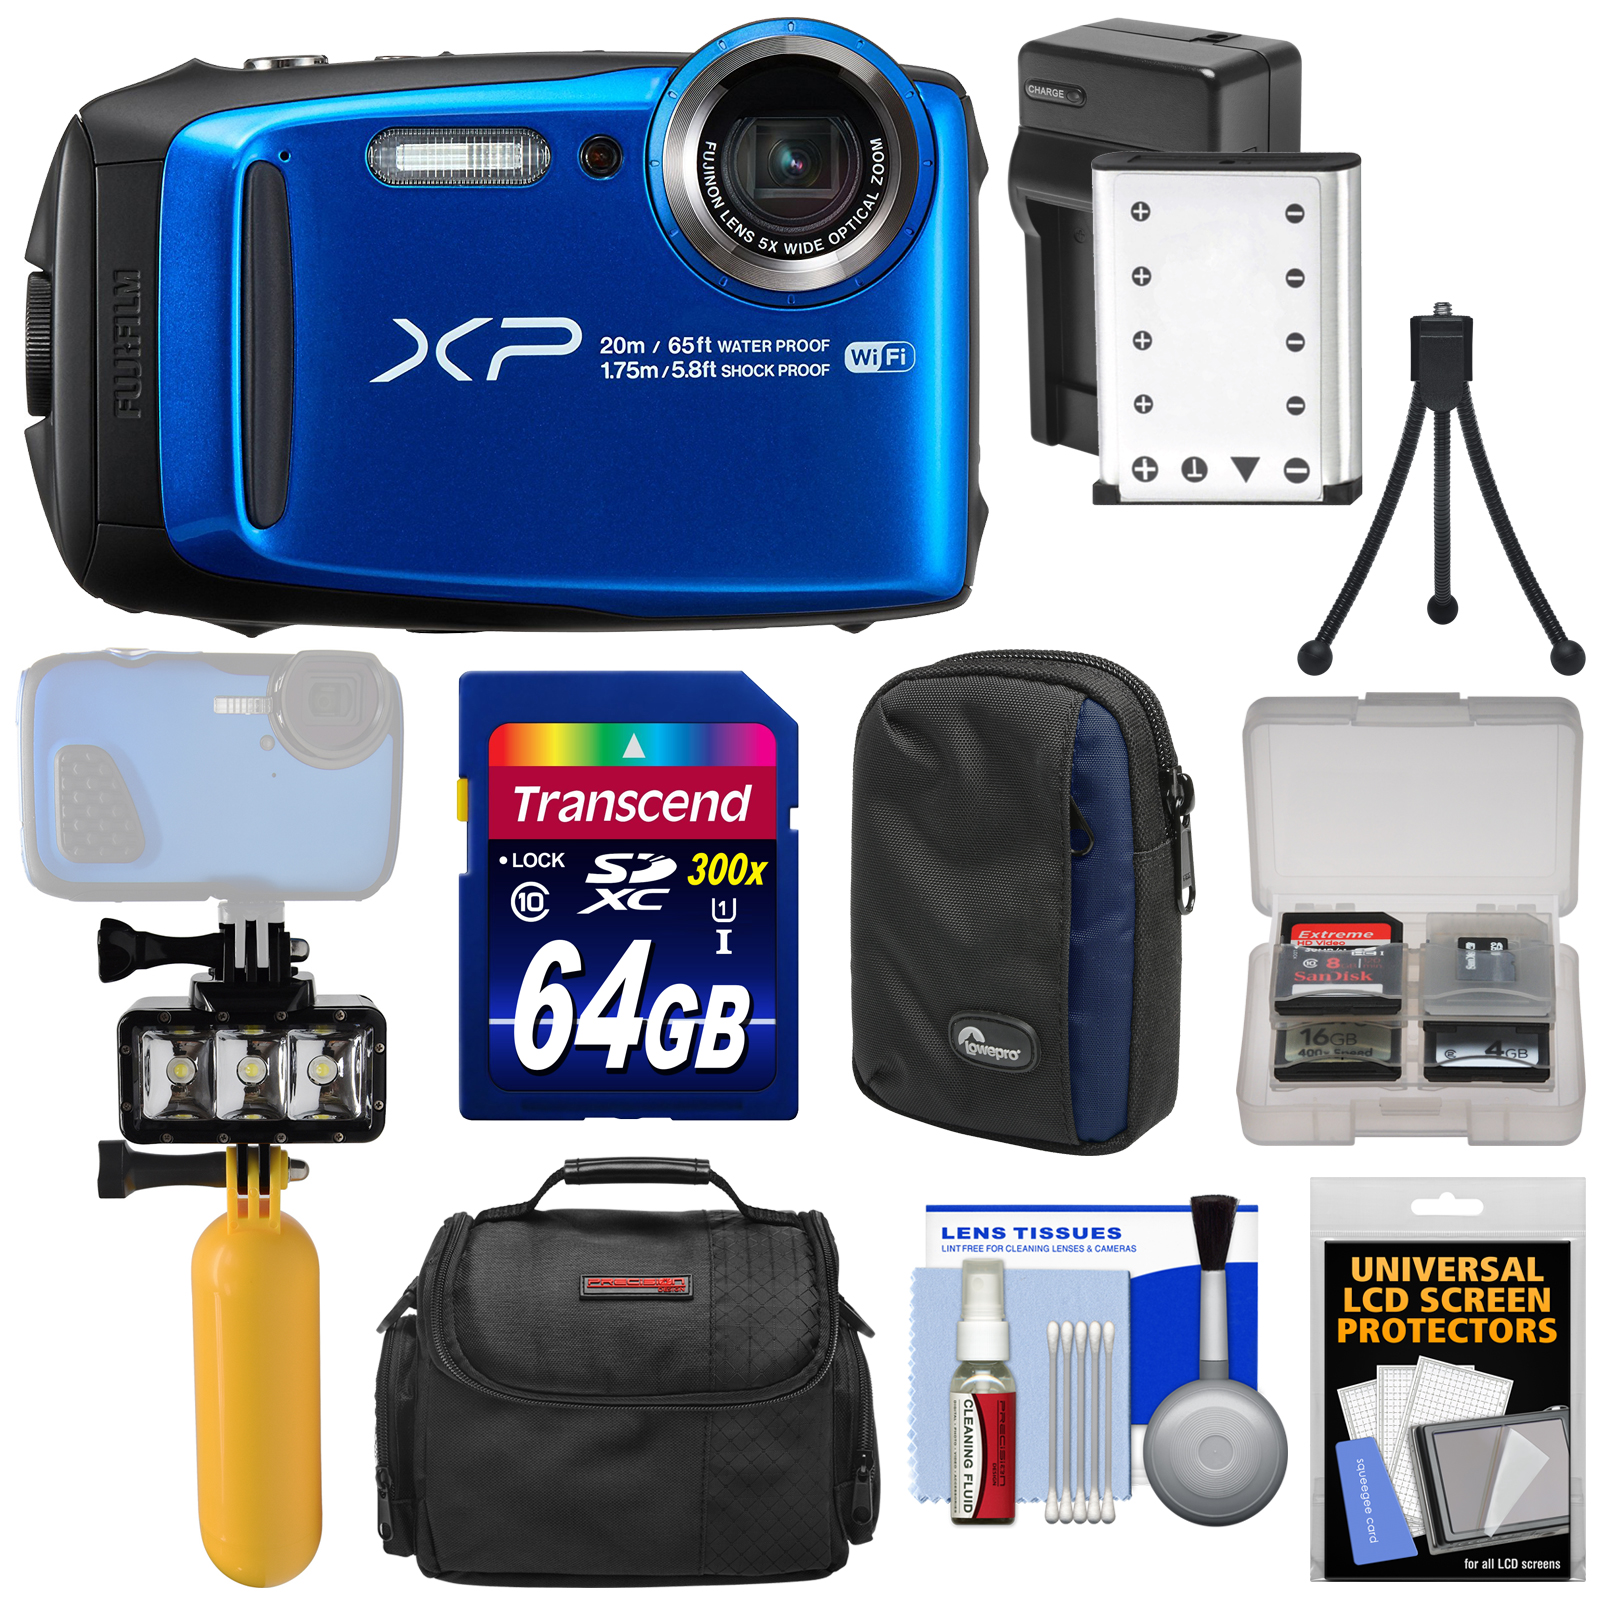 Fujifilm FinePix XP120 Shock & Waterproof Wi-Fi Digital Camera (Blue) with 64GB Card + Battery & Charger + Diving LED Video Light + Buoy + Cases Kit